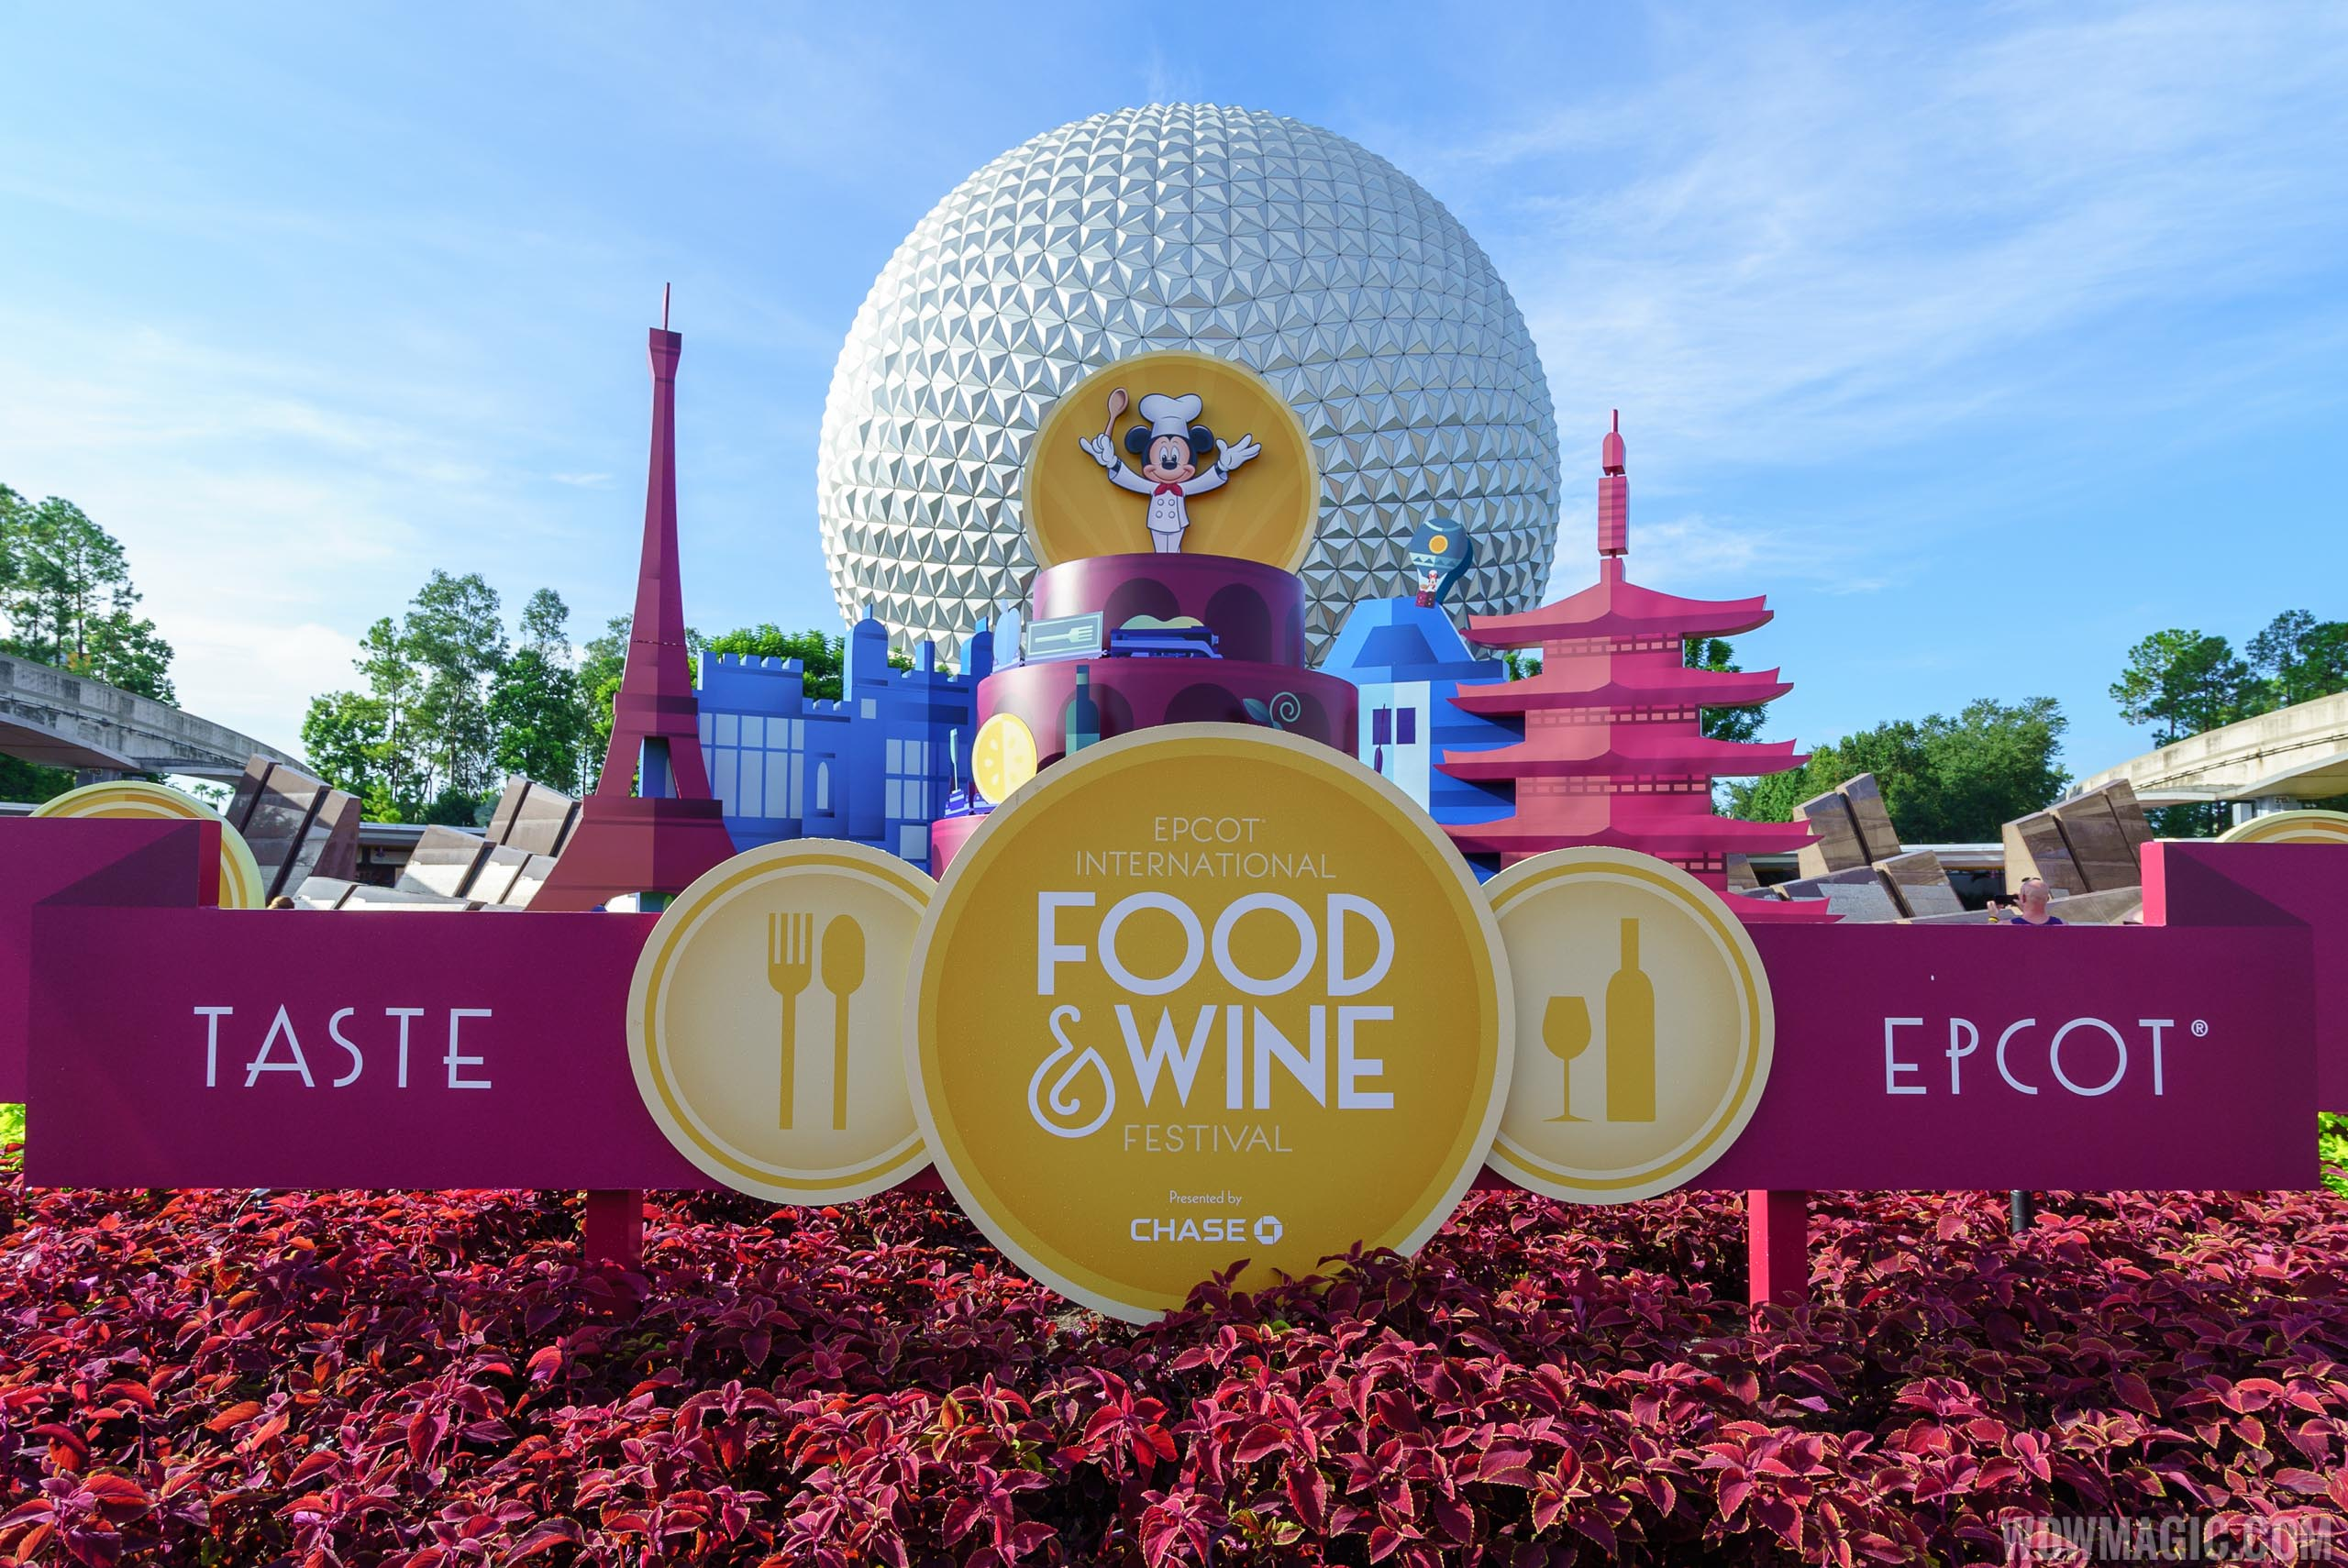 2016 Epcot Food and Wine Festival - Main entrance